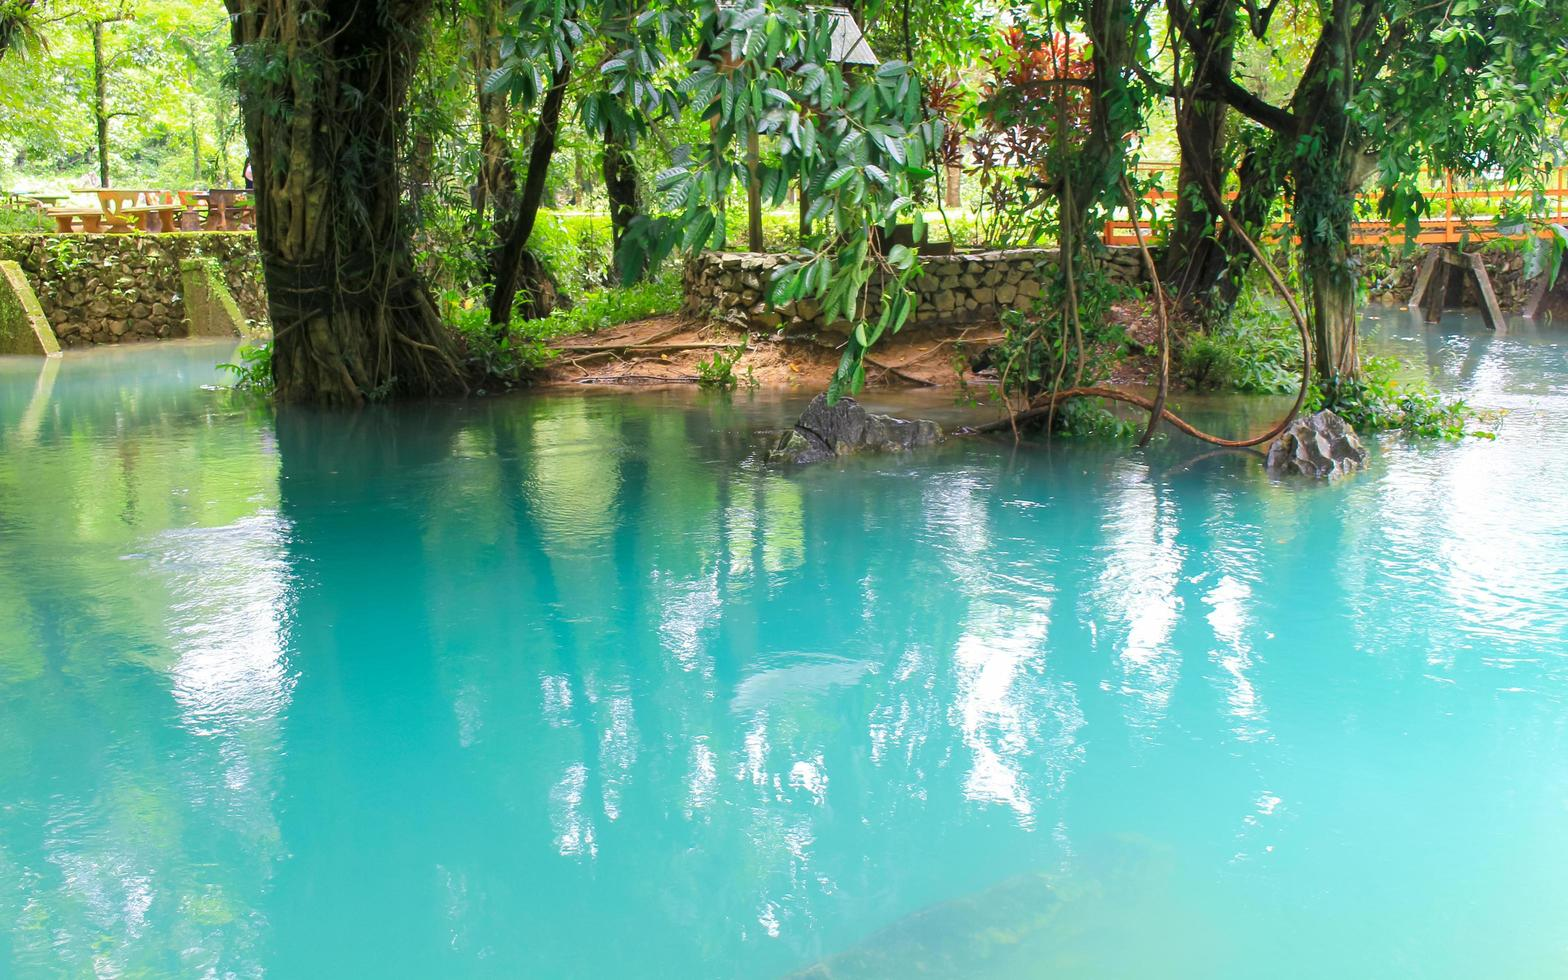 Blue water in park photo